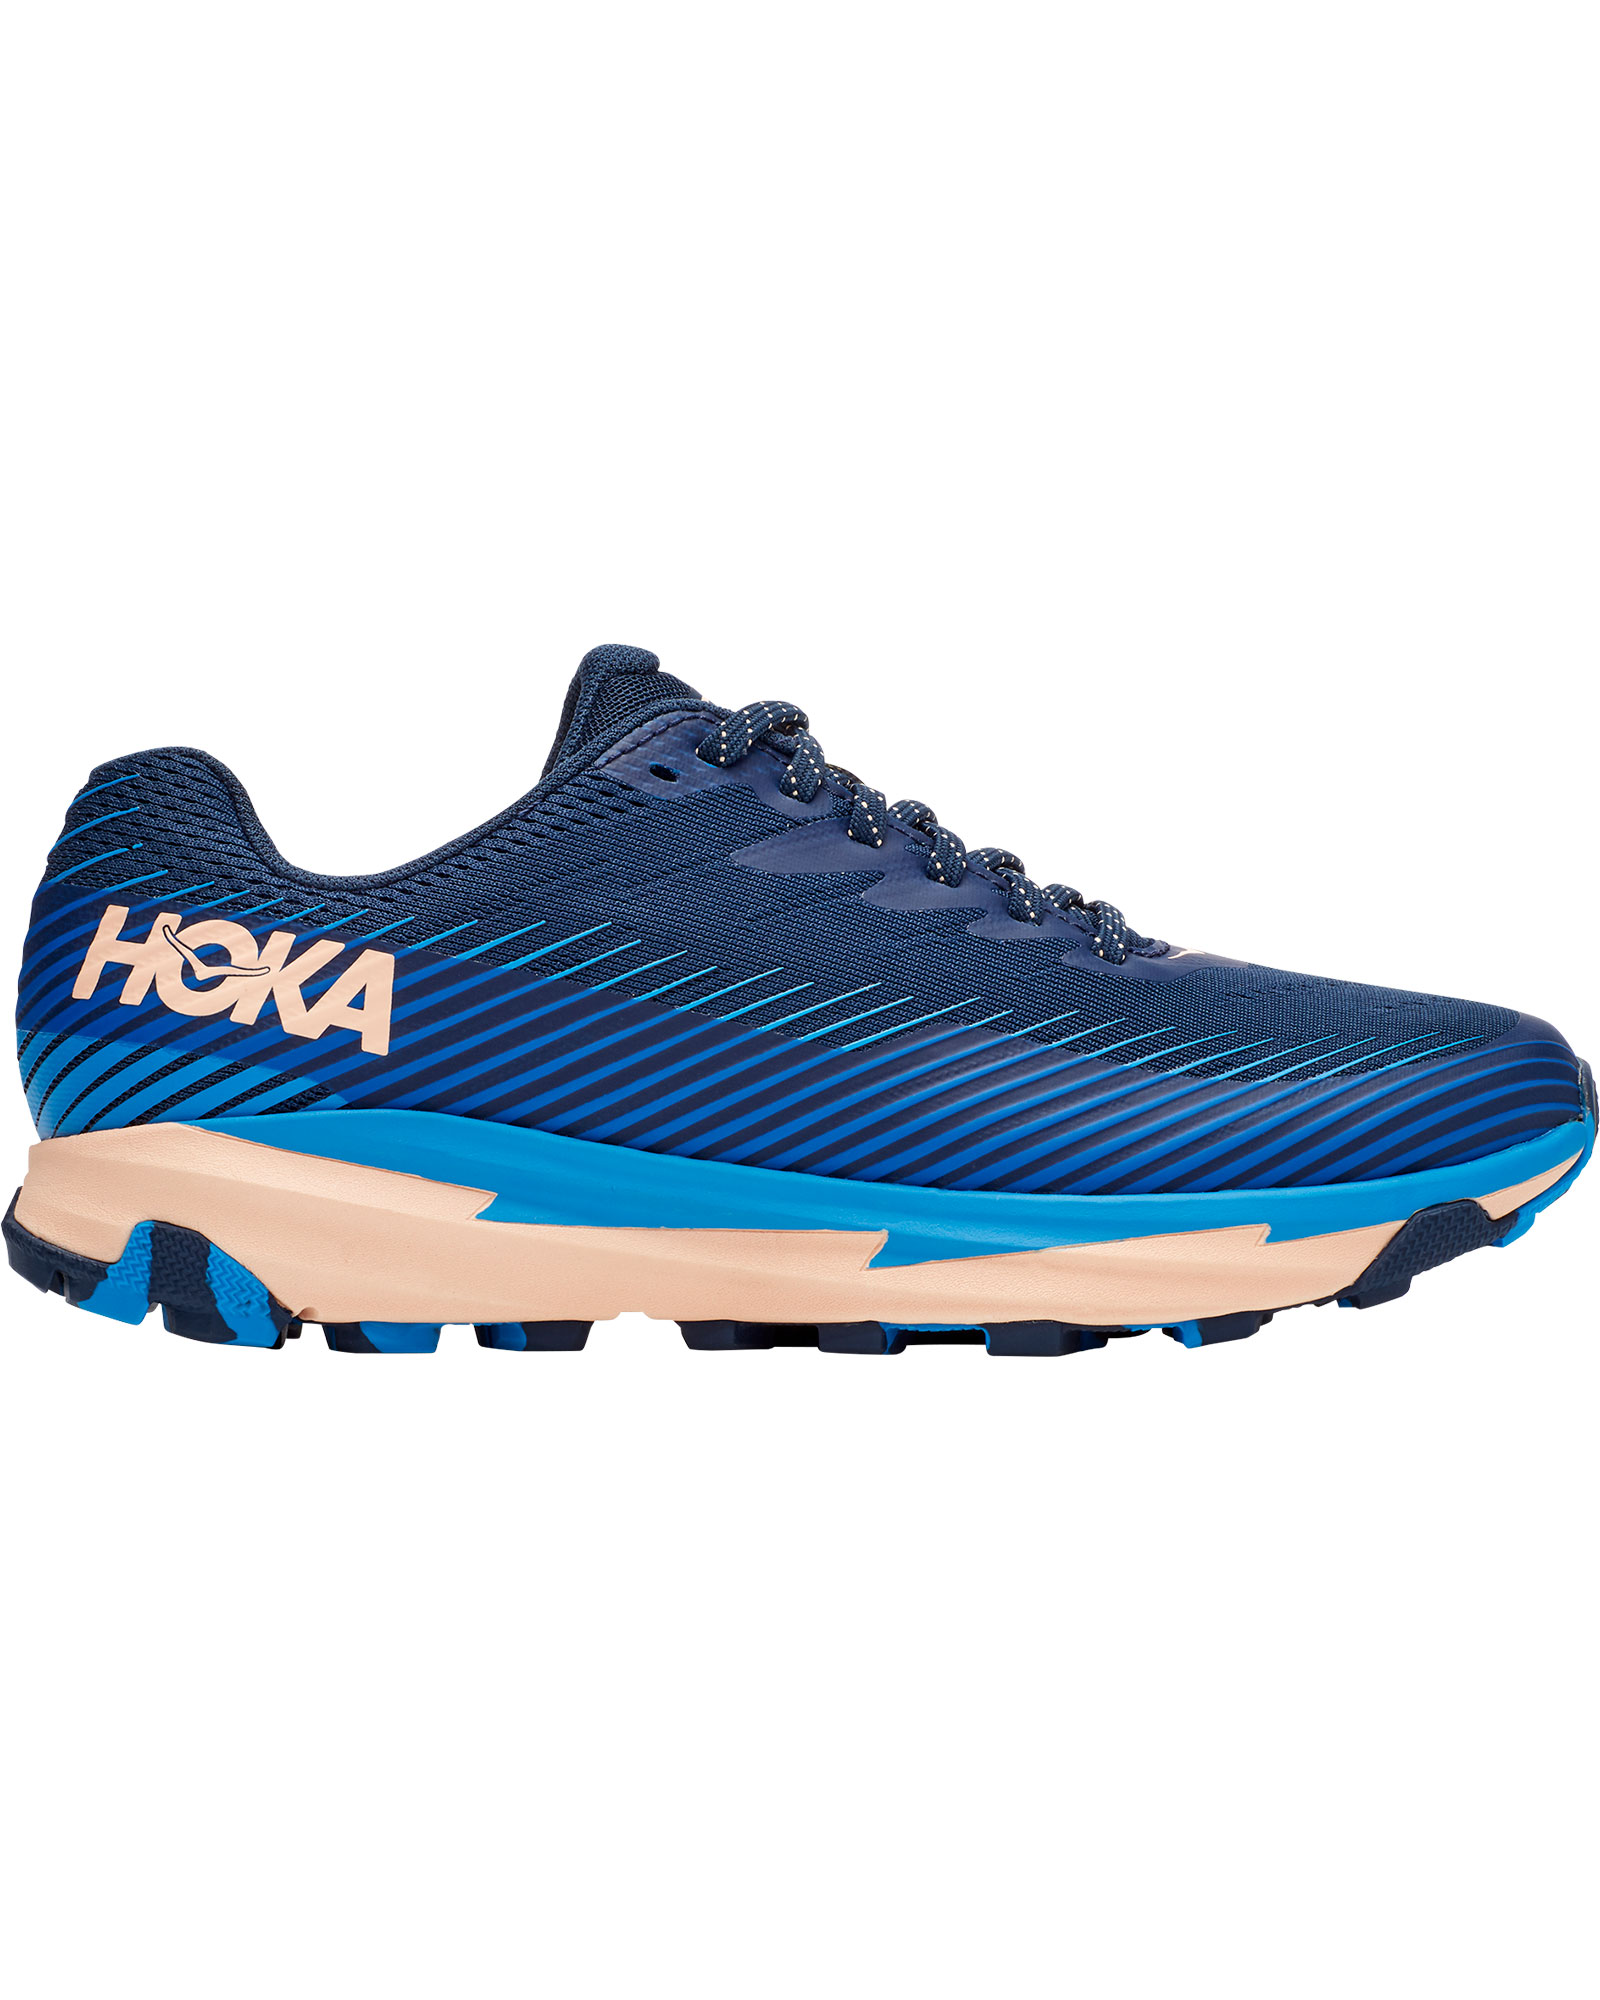 Hoka One One Women's Torrent 2 Trail Running Shoes 0